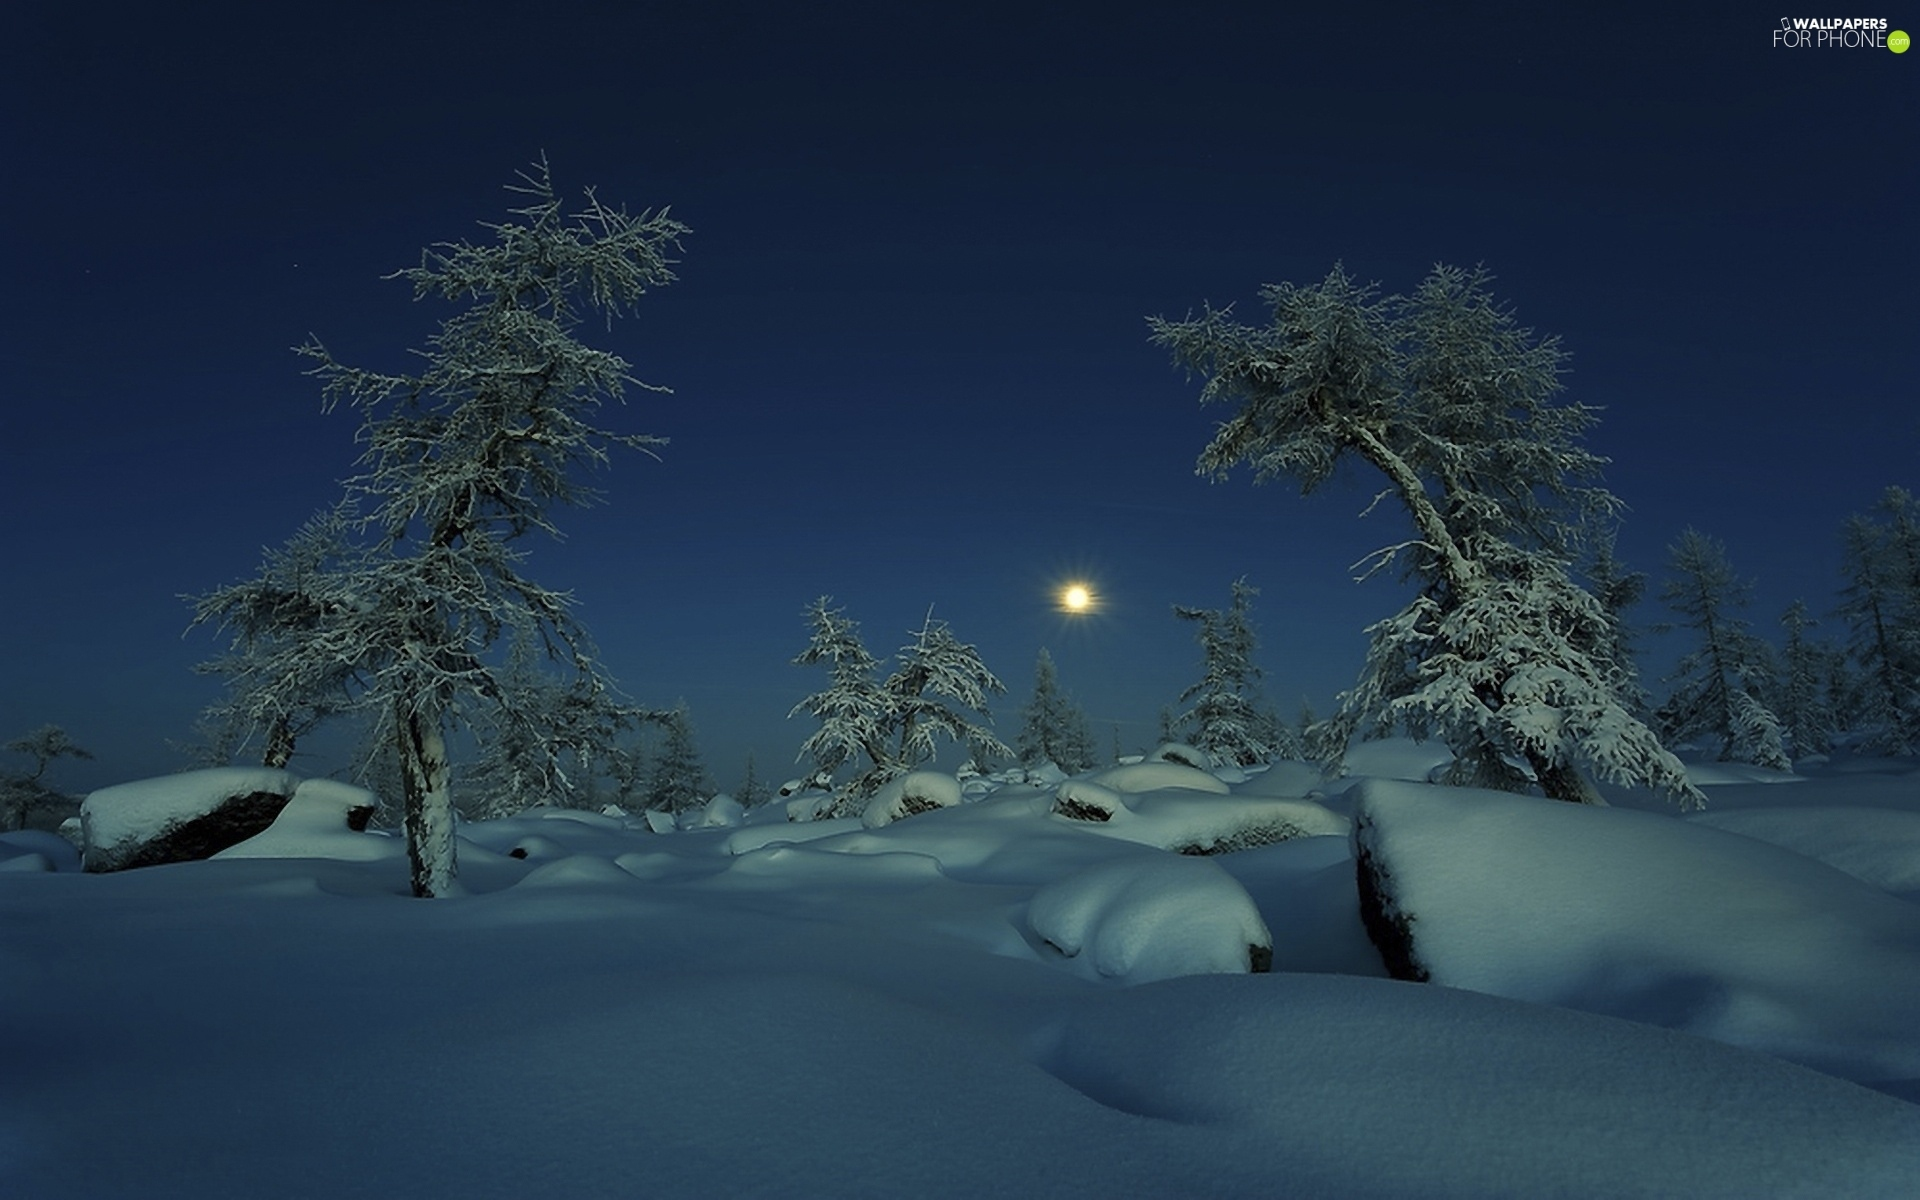 moon, viewes, snow, trees